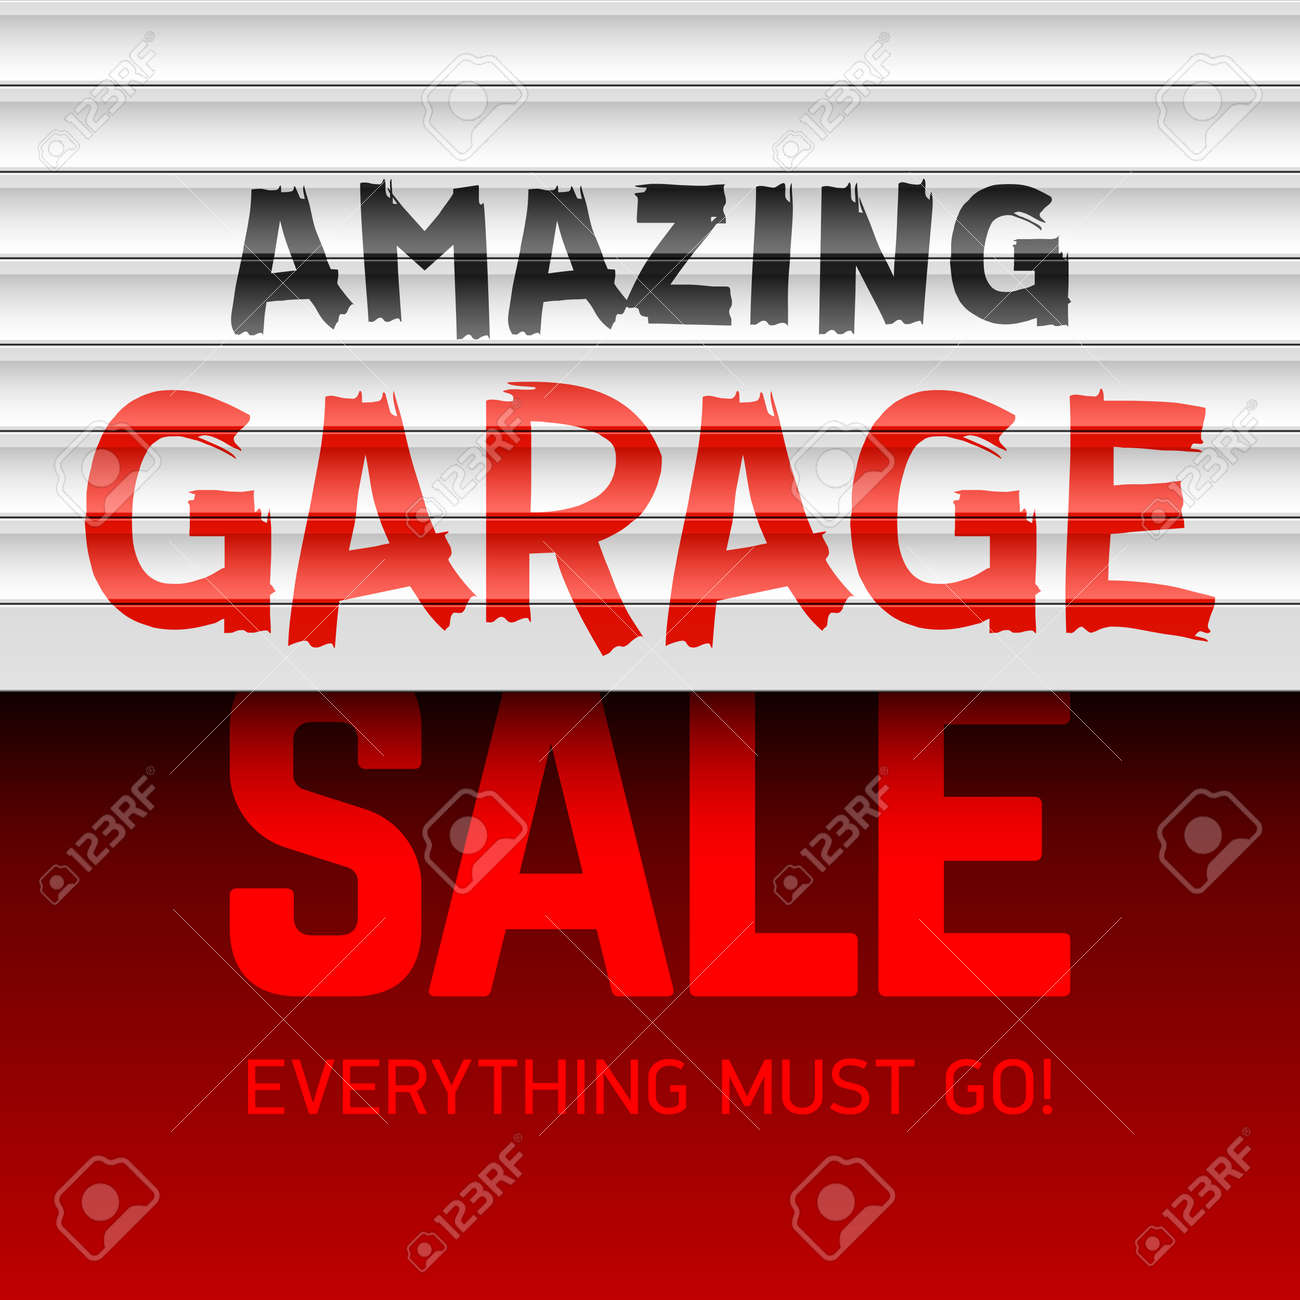 Amazing Garage Sale Poster Template Royalty Free Cliparts, Vectors ...